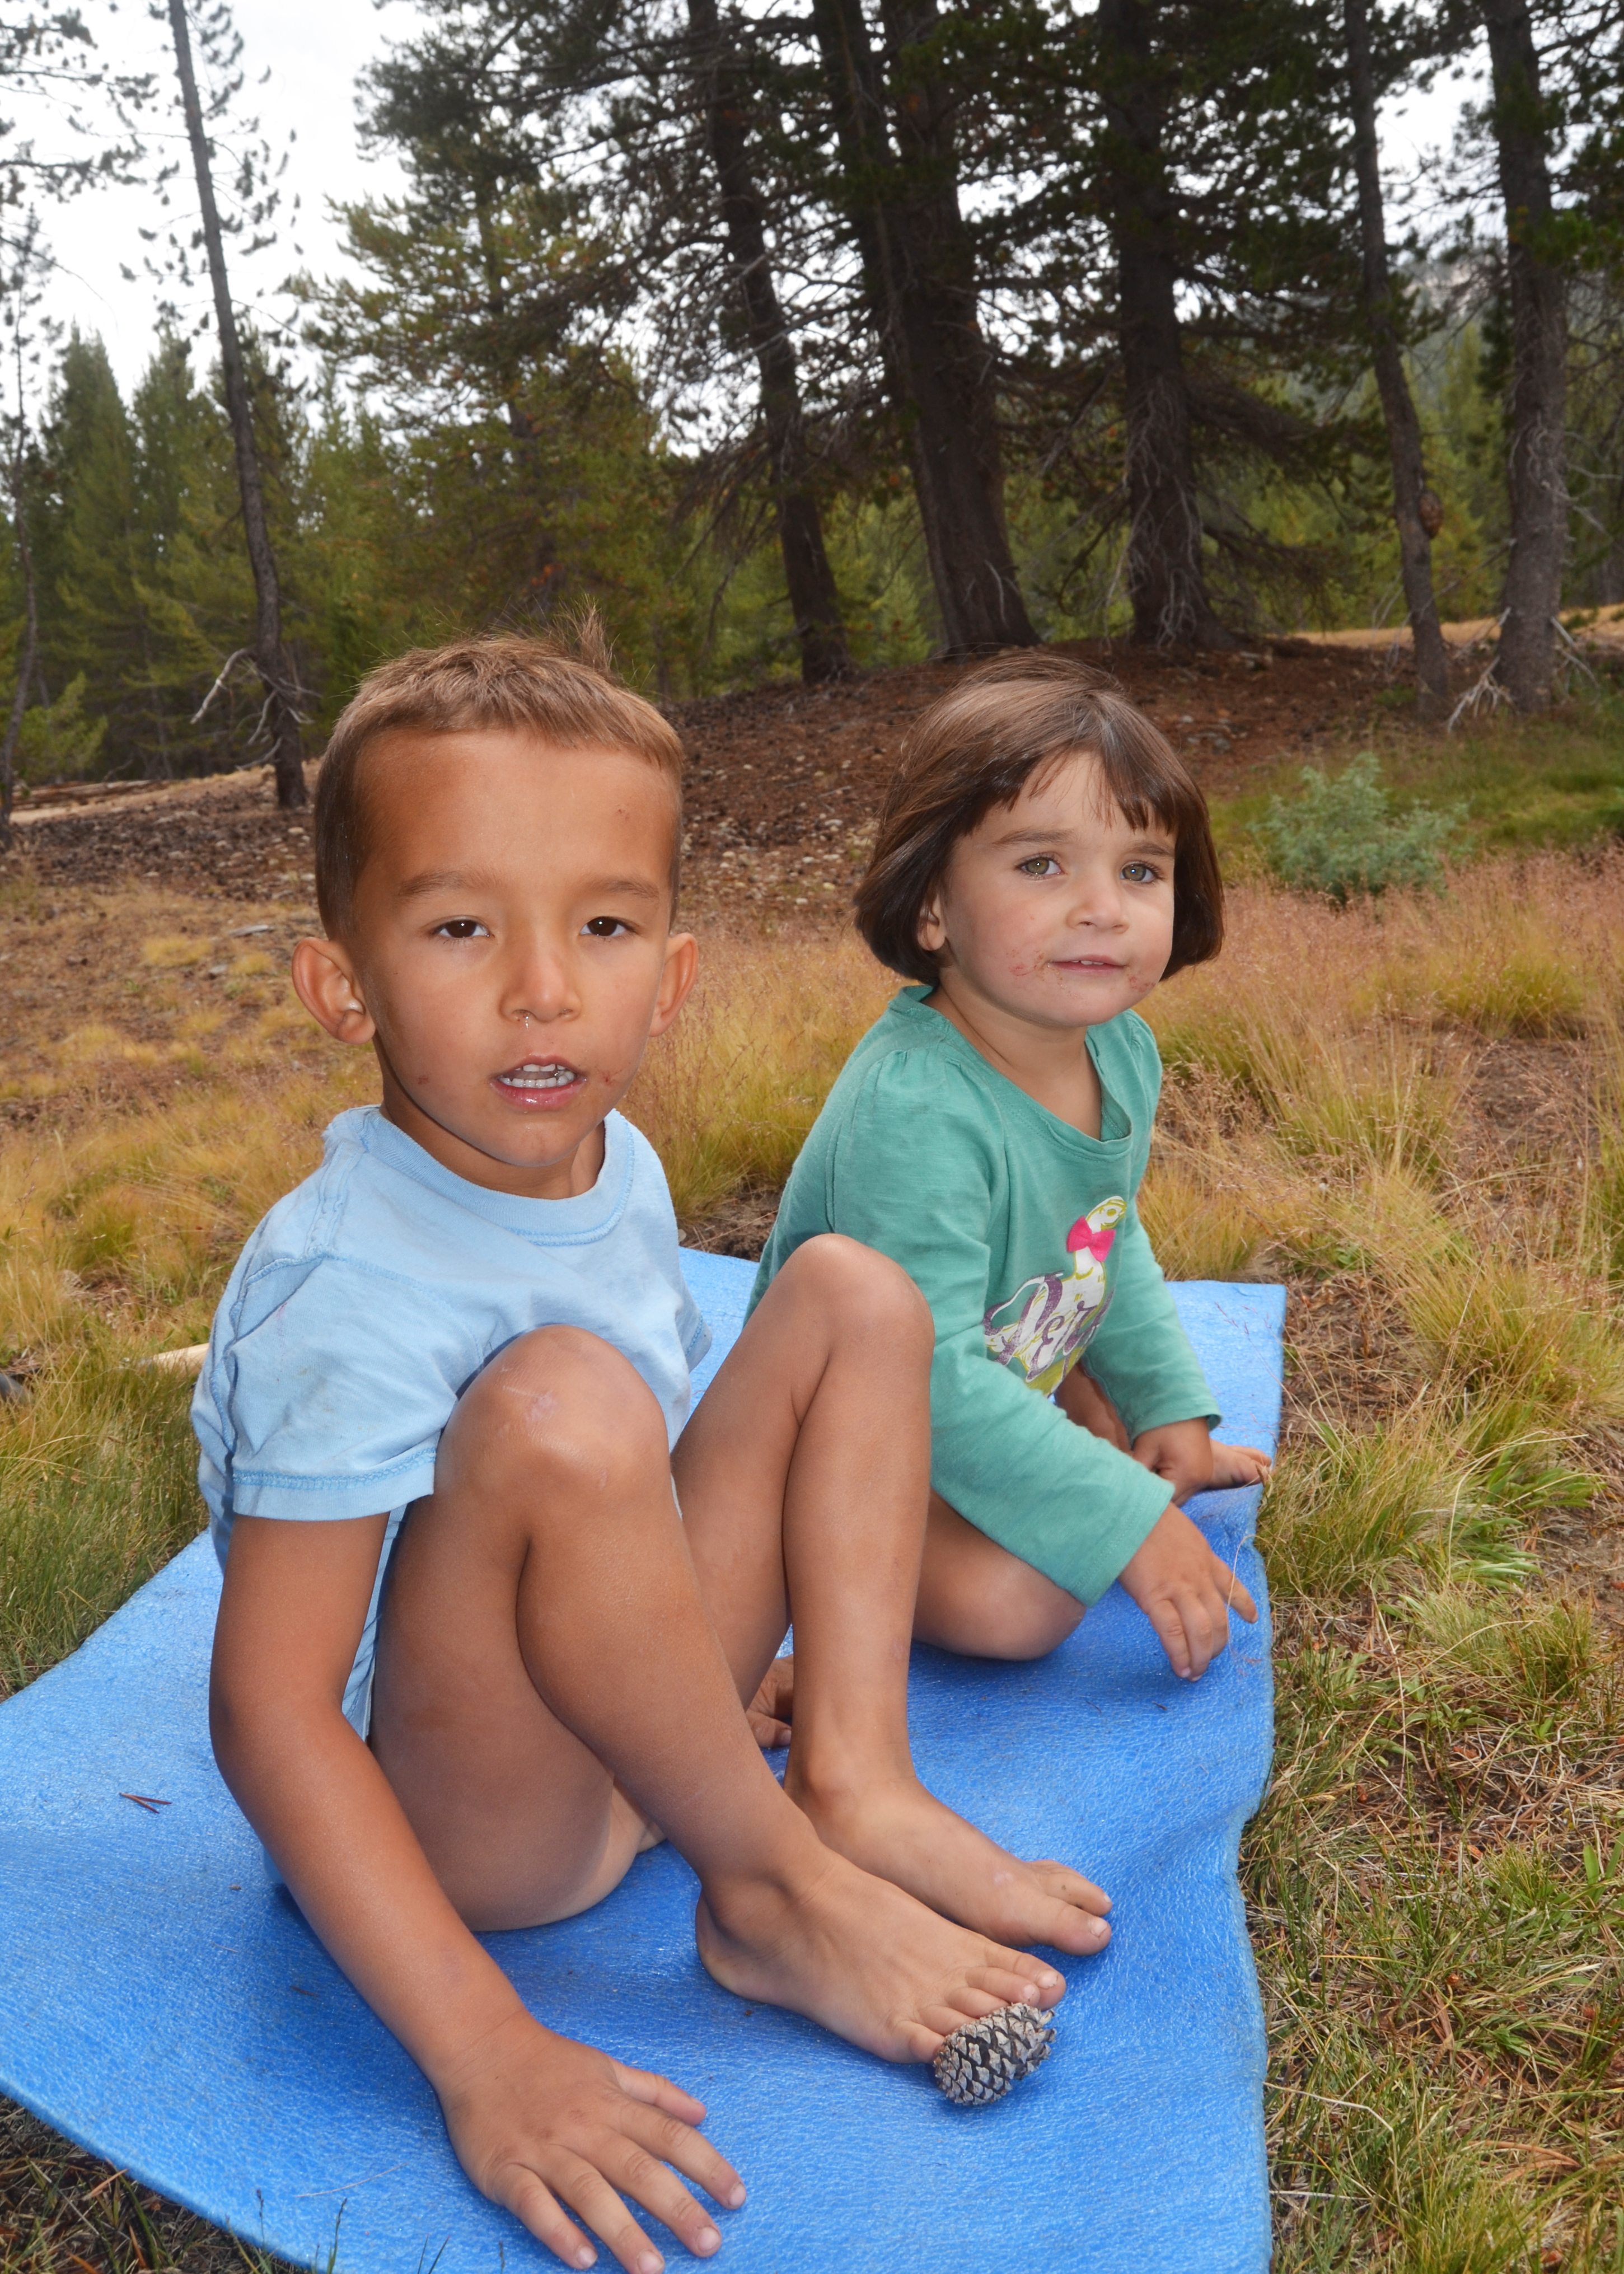 Rory and Caedryn, Yosemite, Summer 2012